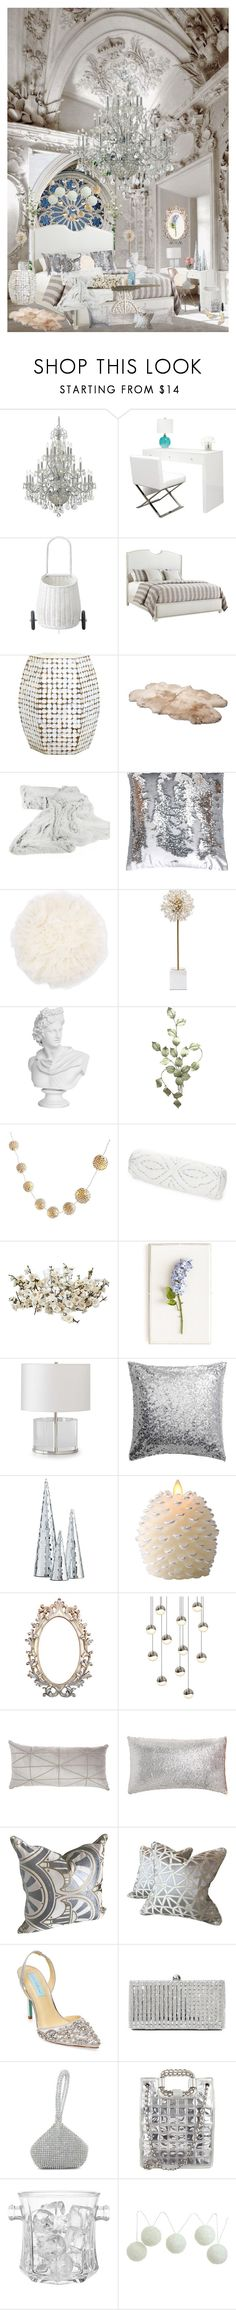 """Frozen"" by deborah-518 ❤ liked on Polyvore featuring interior, interiors, interior design, home, home decor, interior decorating, Crystorama, Control Brand, Olli Ella and UGG Australia"